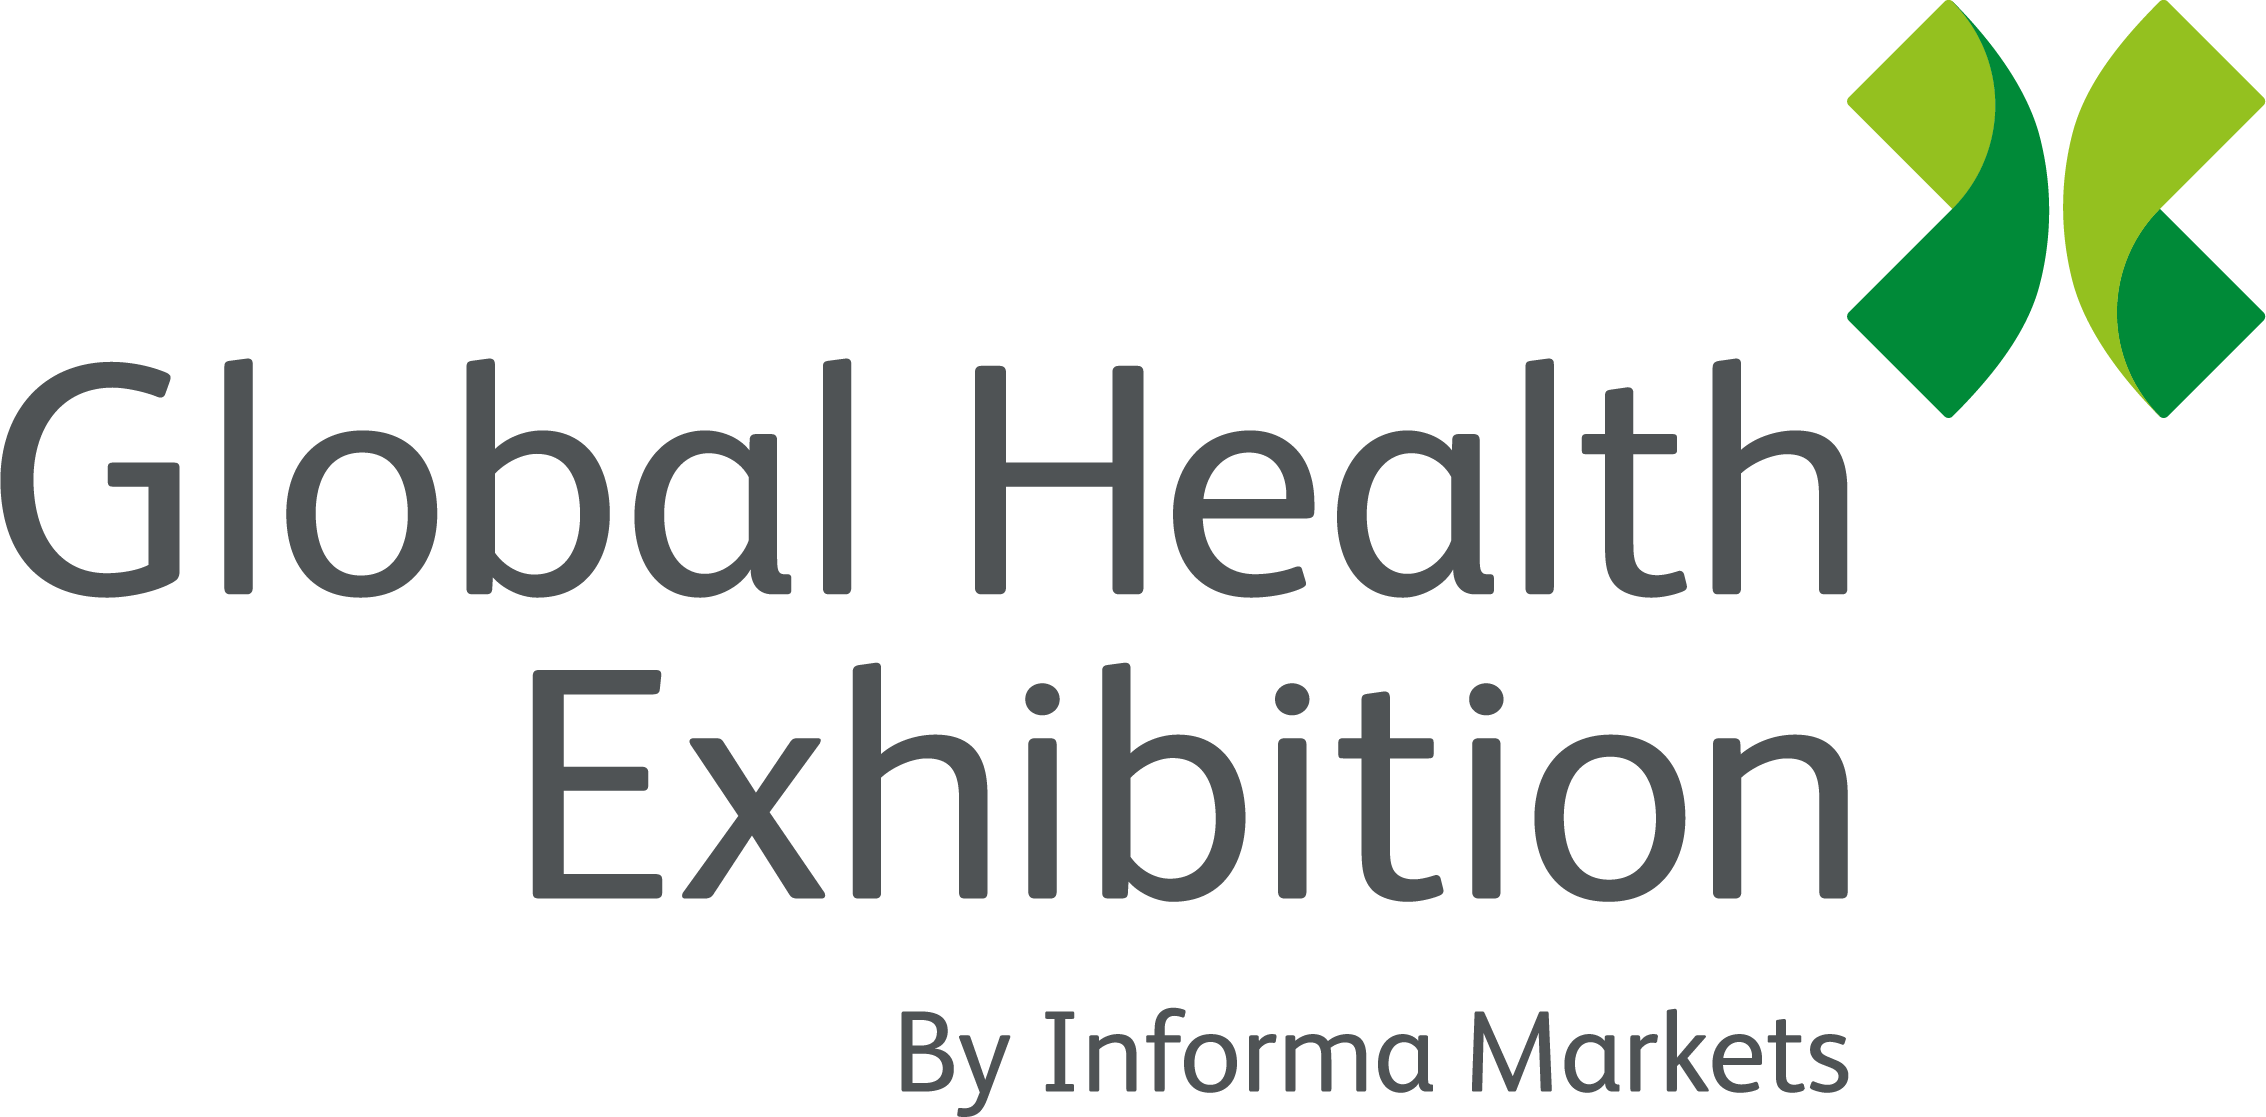 Global Healthcare Expo